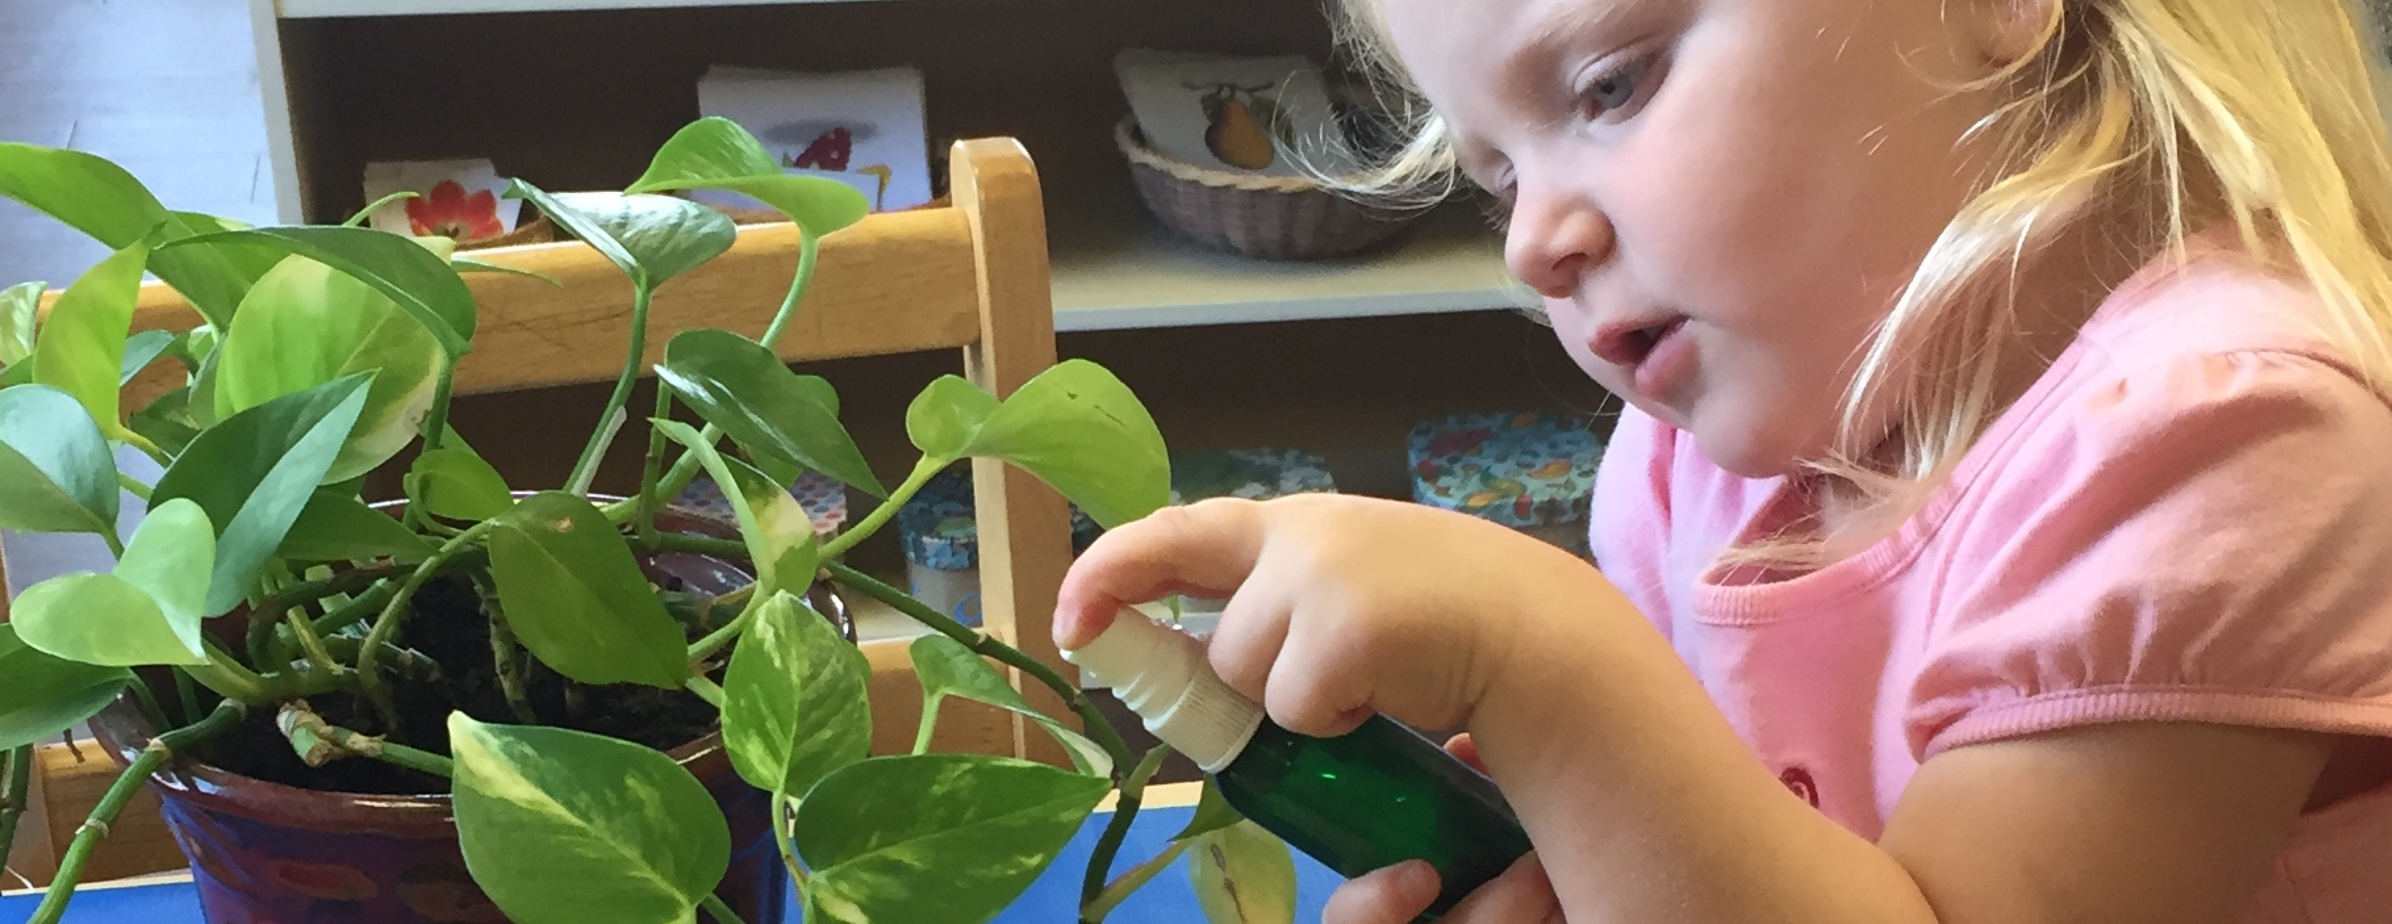 Montessori Preschool for Toddlers 18 months - 3 years